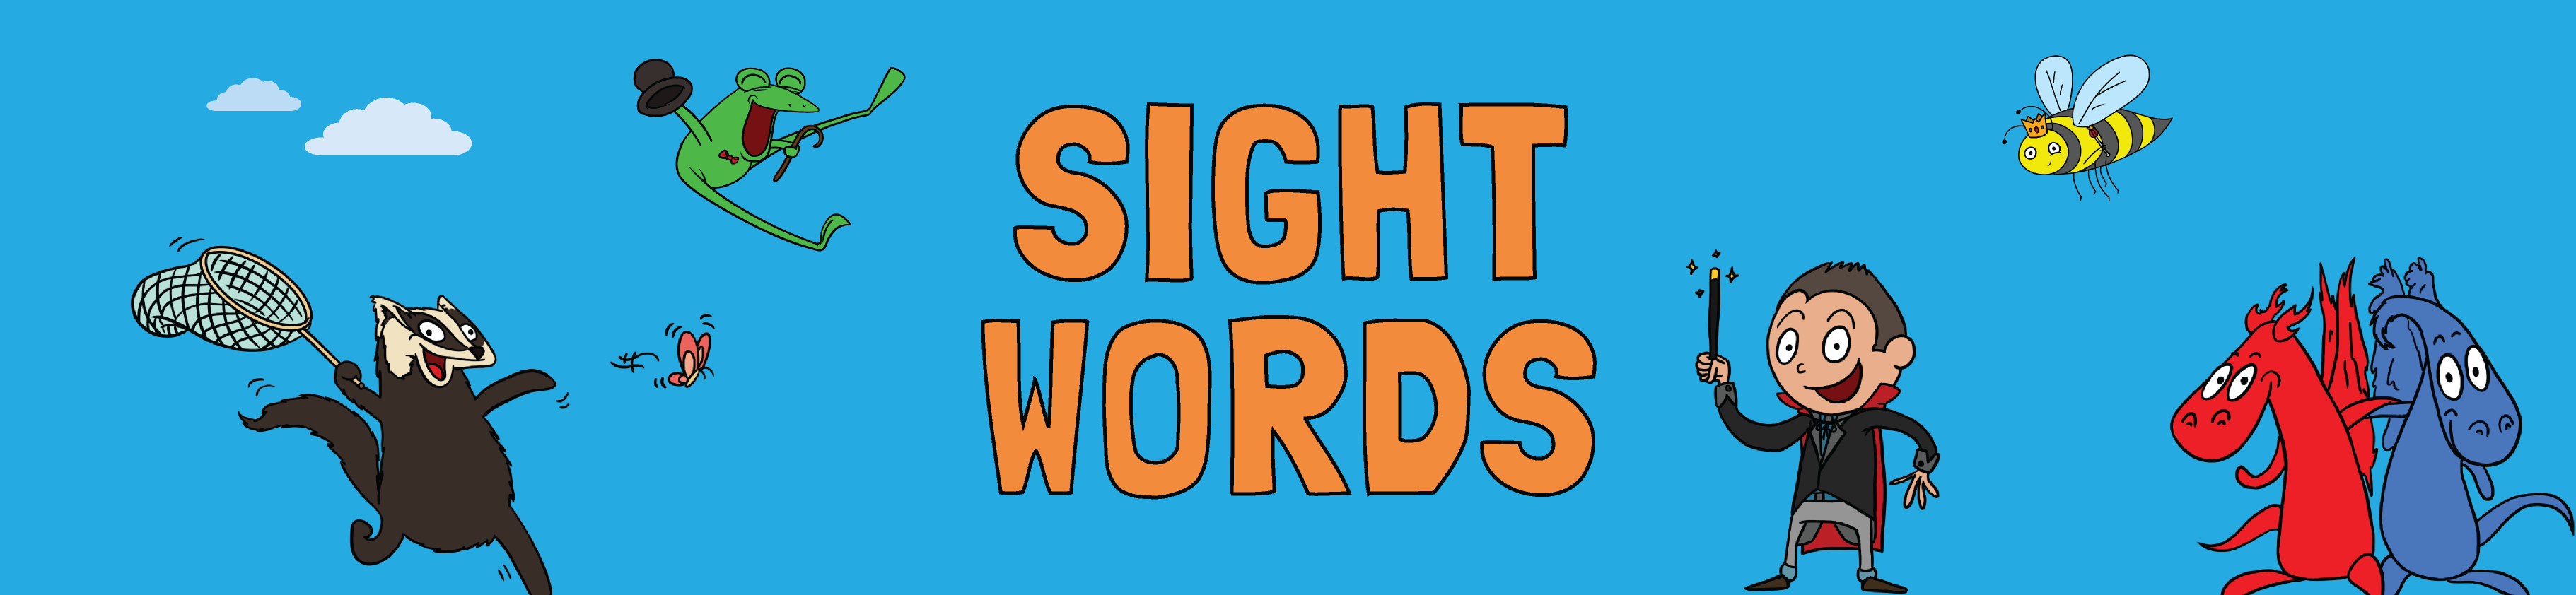 Top 25 Sight Words Young Readers Need to Know!